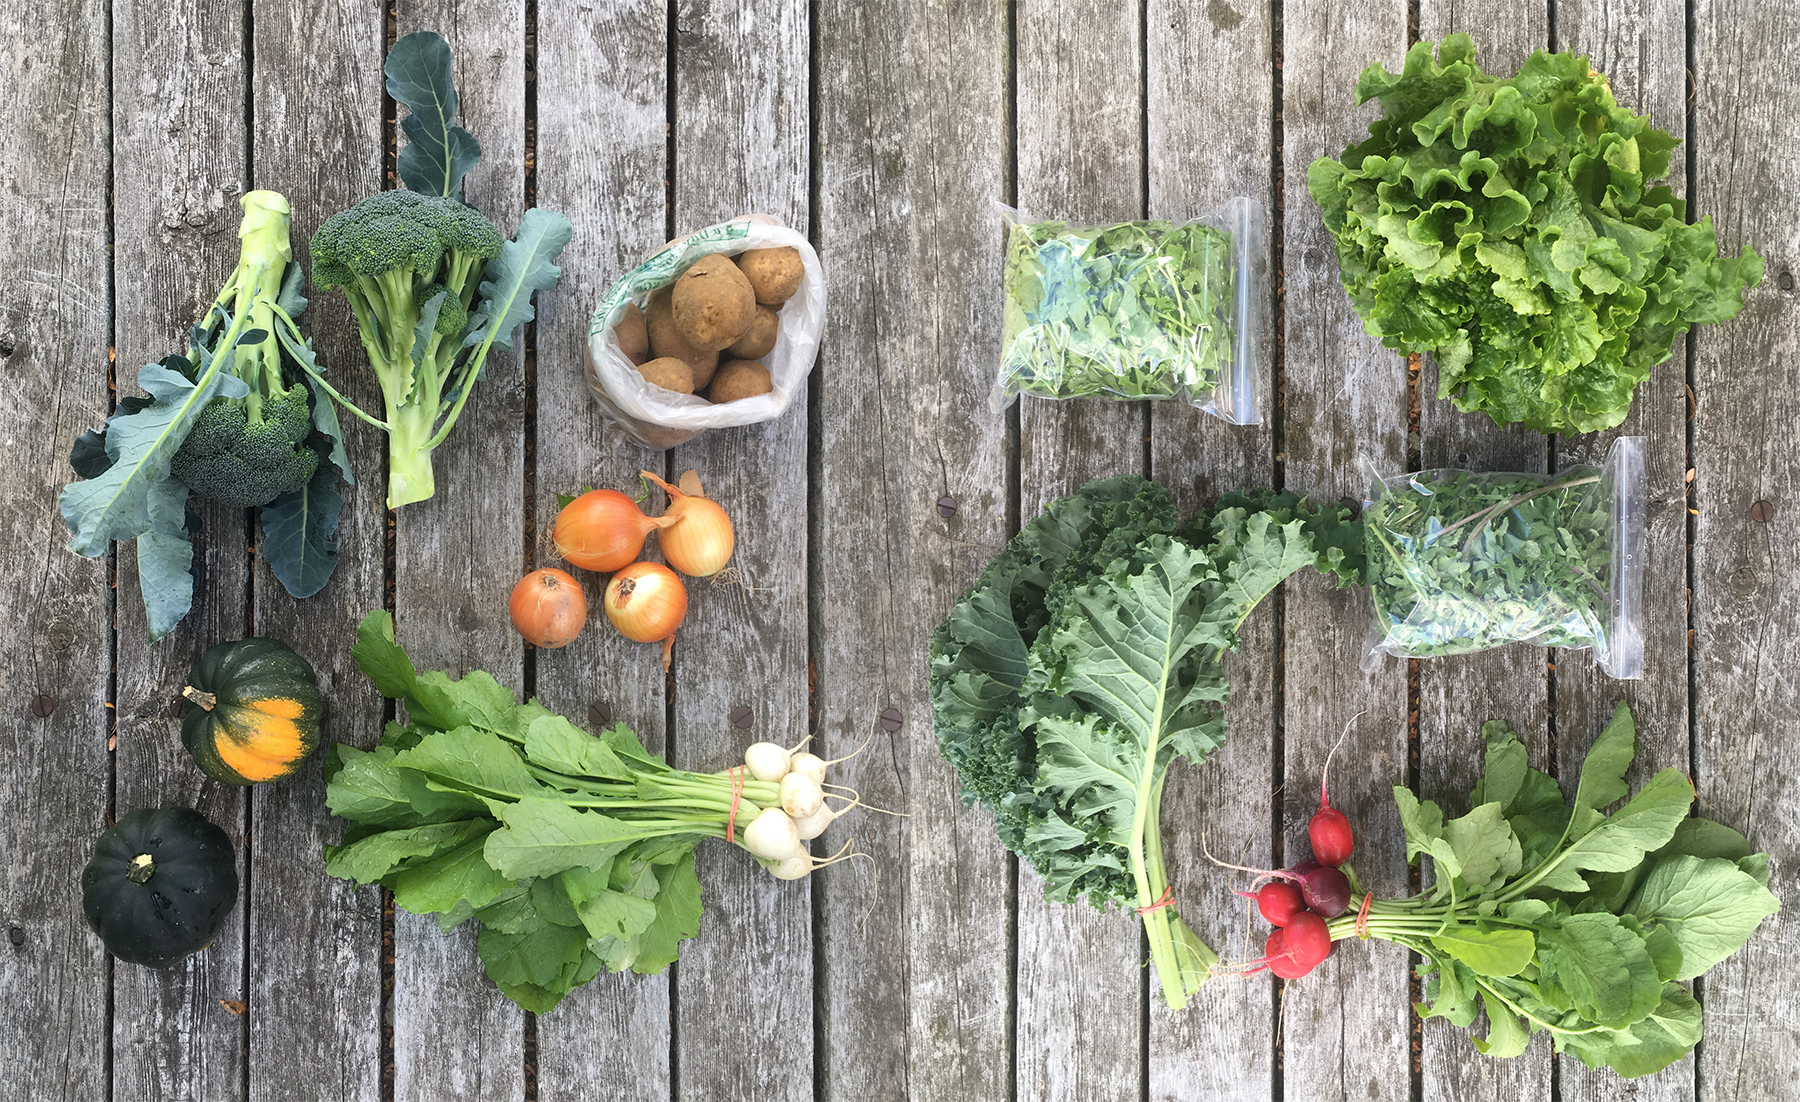 CSA weekly share example with greens, radishes, broccoli, onions, squash, potatoes